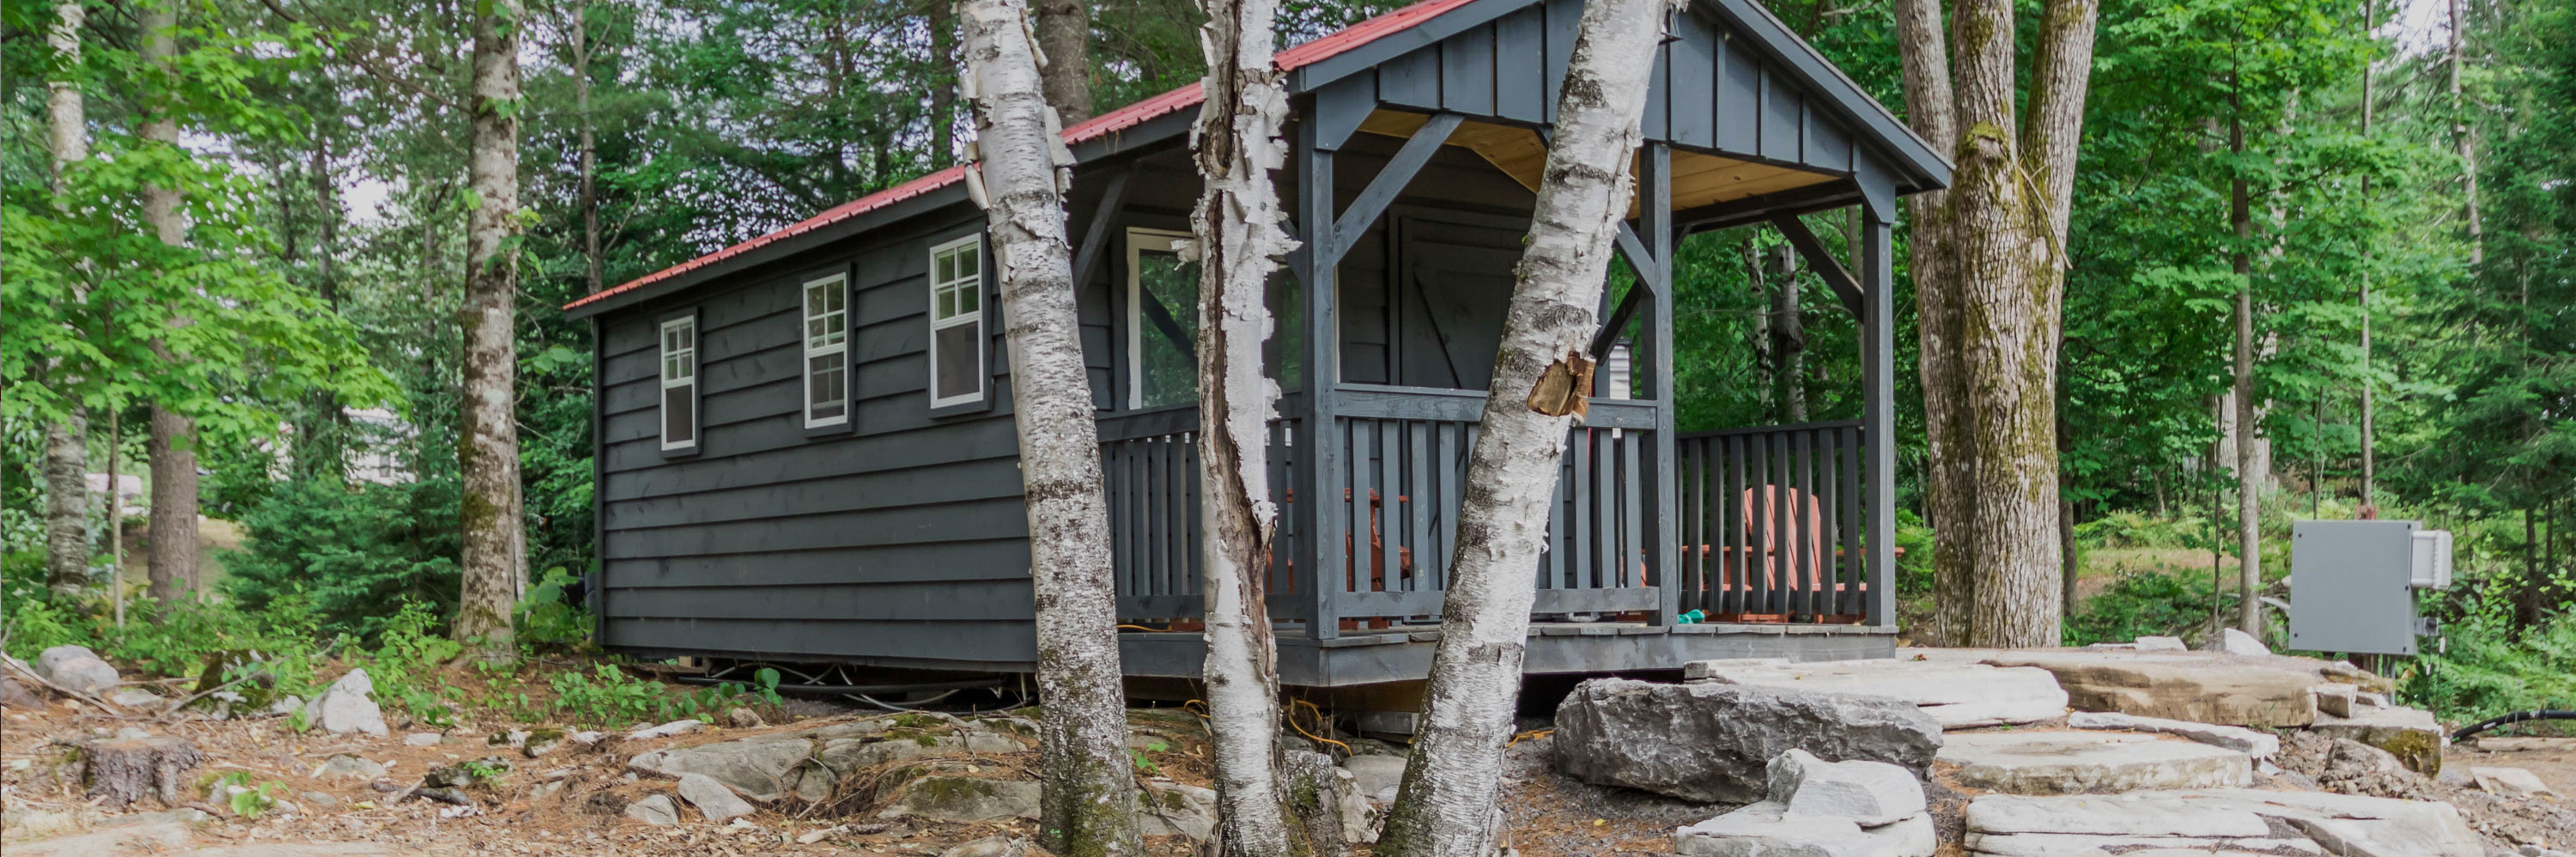 robins nest, tiny home, cottage rental, amenities, snowbird summer haven resort, white lake, Ontario, Canada